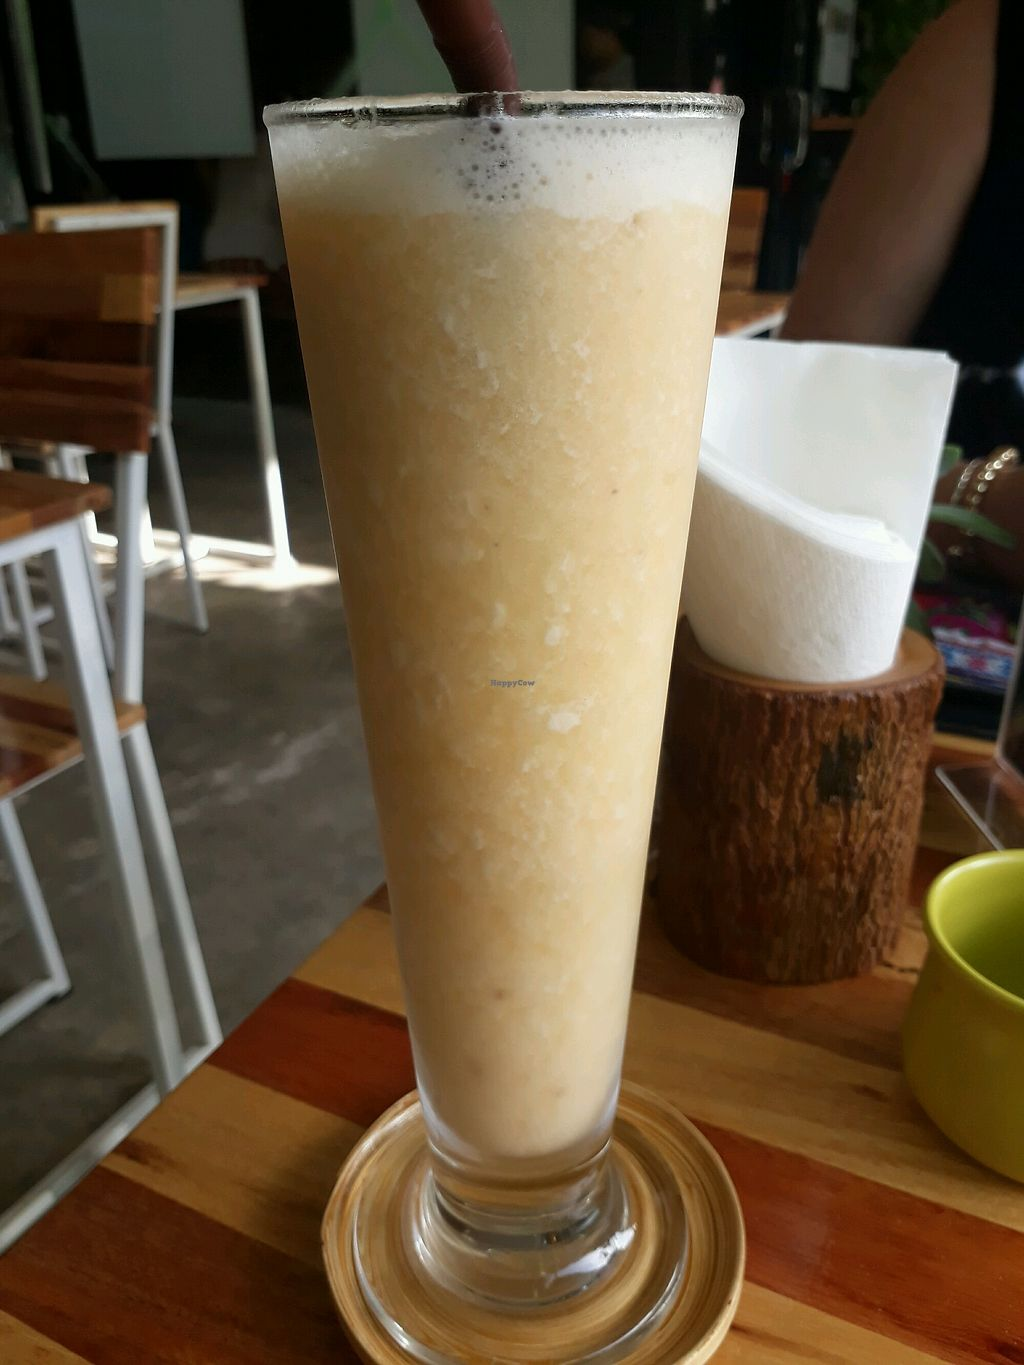 """Photo of Pure Vegan Heaven  by <a href=""""/members/profile/LilacHippy"""">LilacHippy</a> <br/>Rise and Shine Smoothie  <br/> January 11, 2018  - <a href='/contact/abuse/image/107419/345402'>Report</a>"""